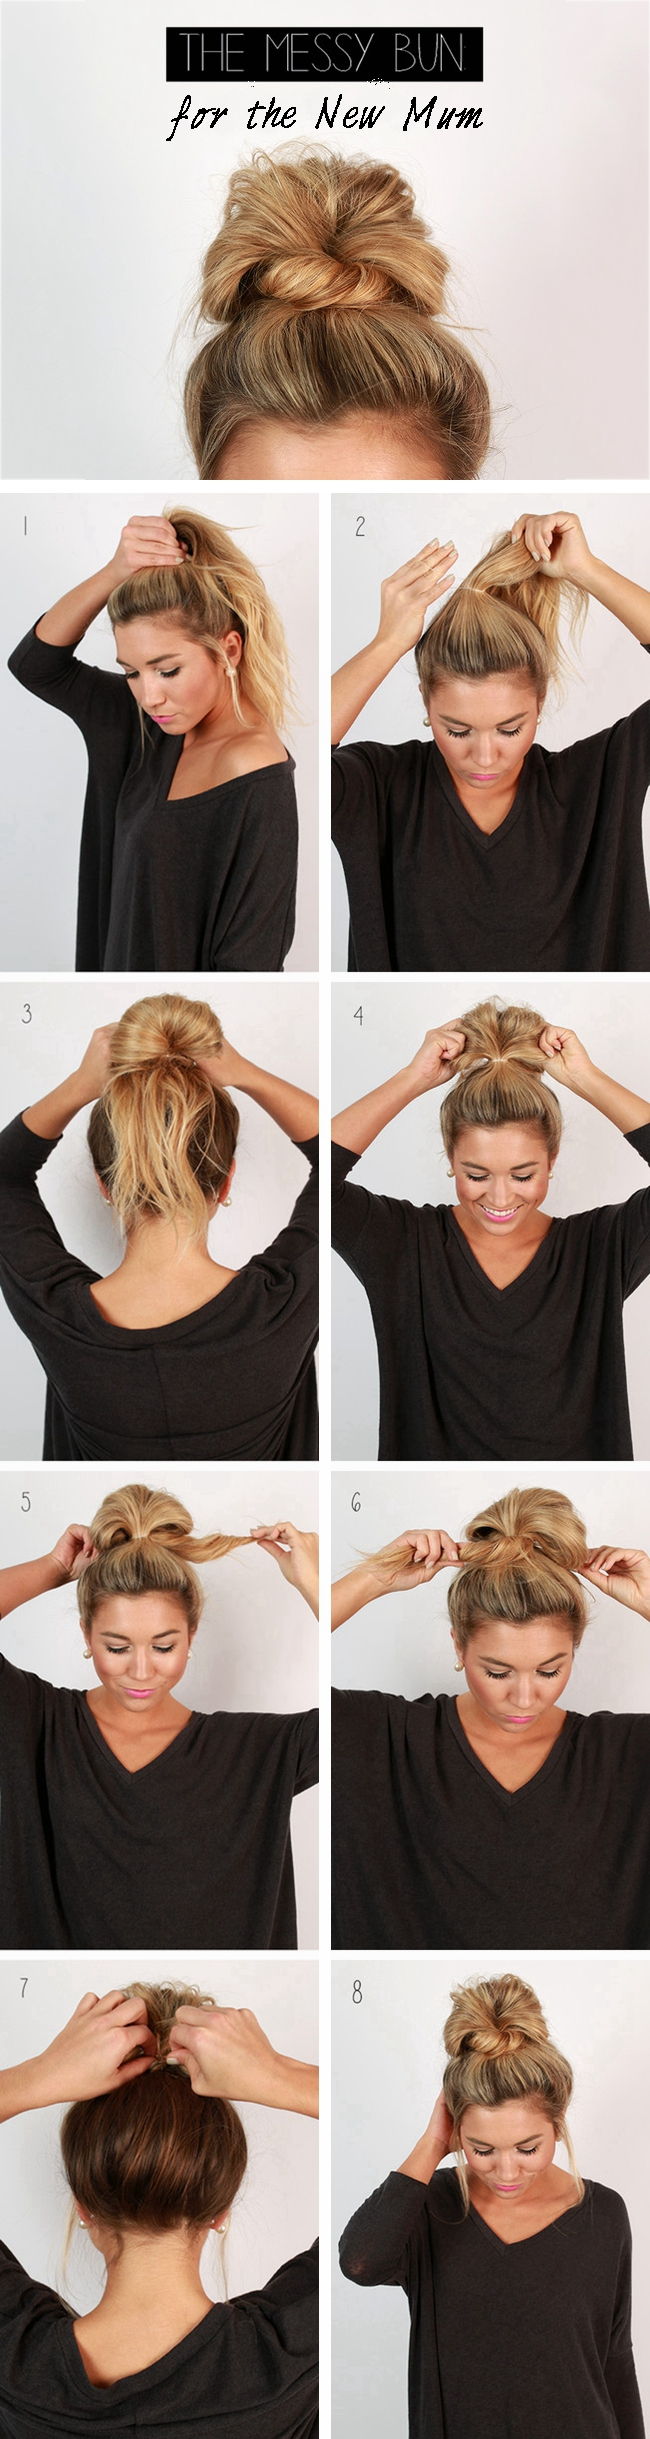 The ultimate messy bun